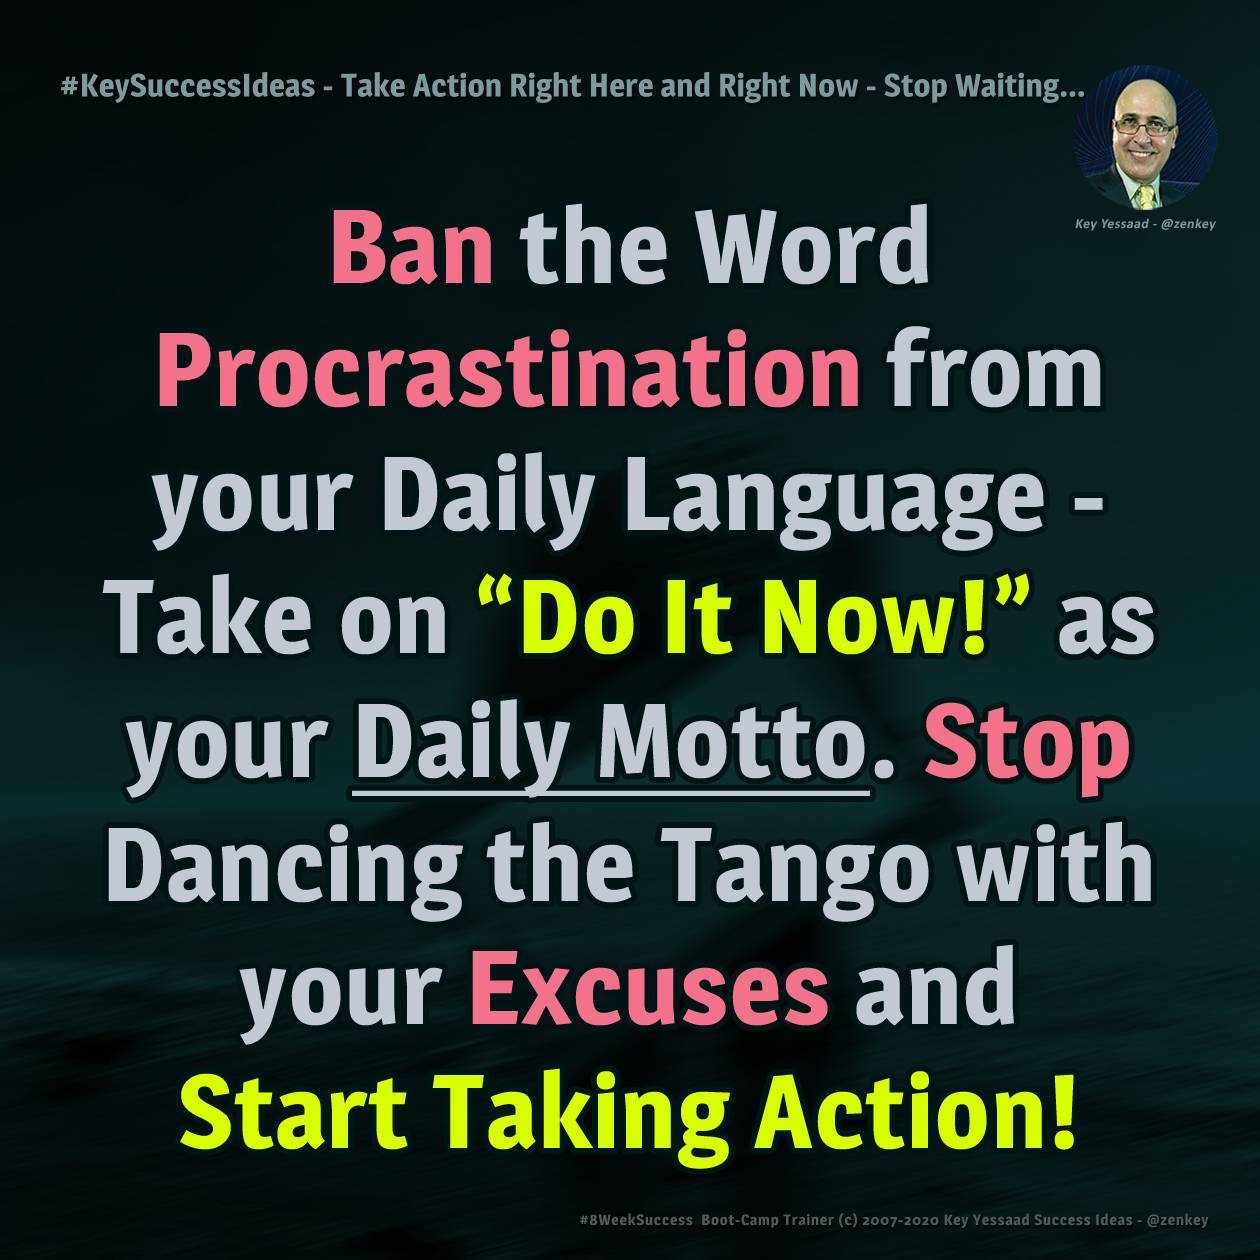 Take Action Right Here and Right Now - Stop Waiting... - #KeySuccessIdeas